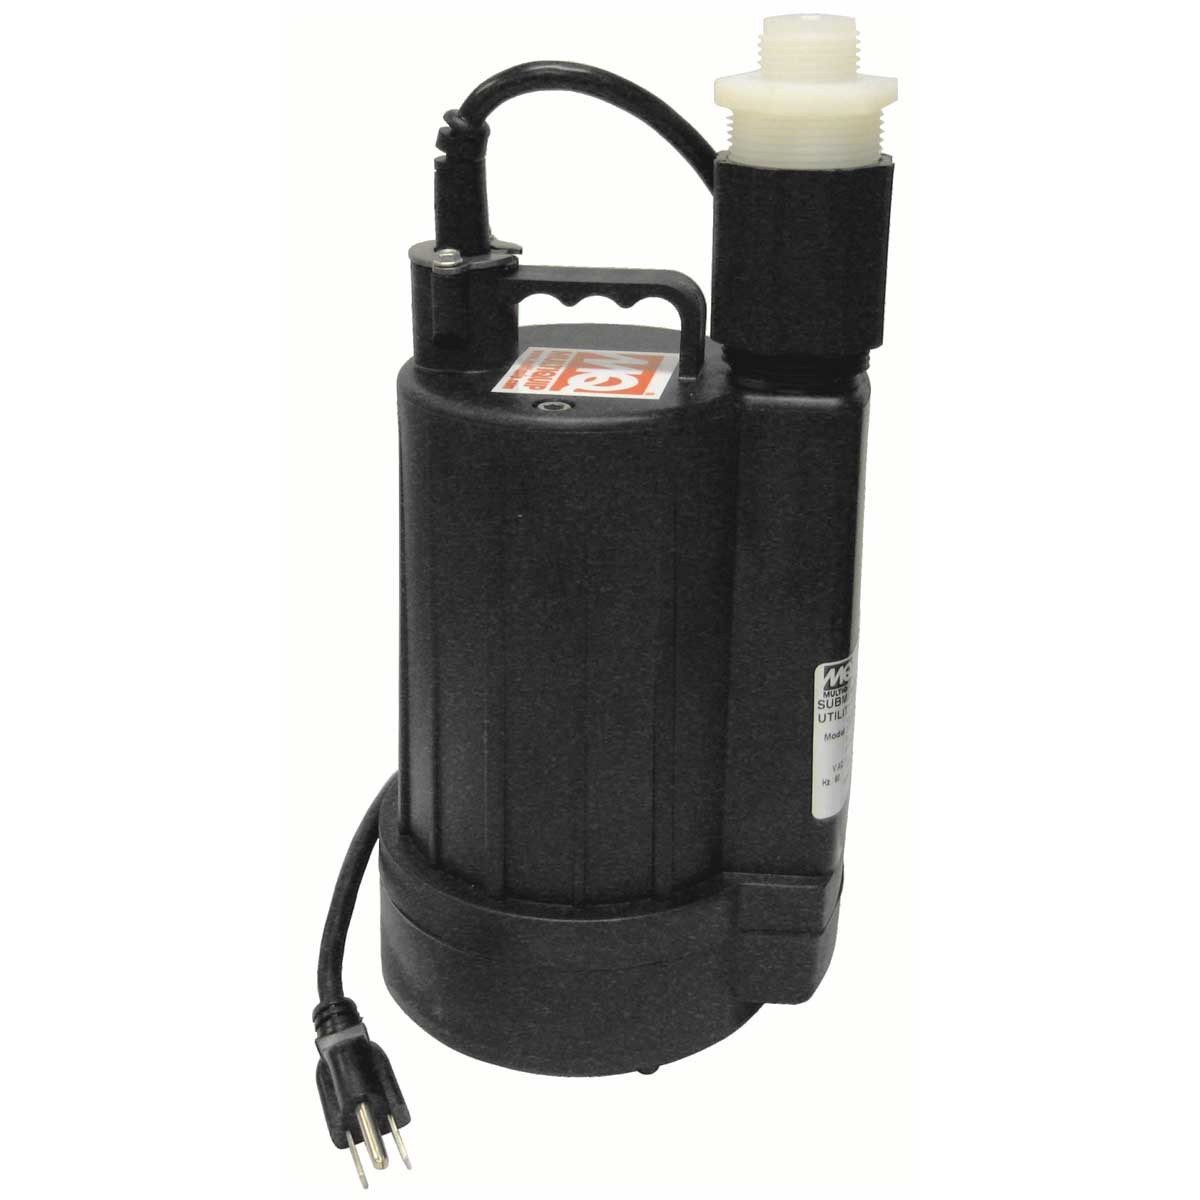 Multiquip Yellow Sub Submersible Pump 110V